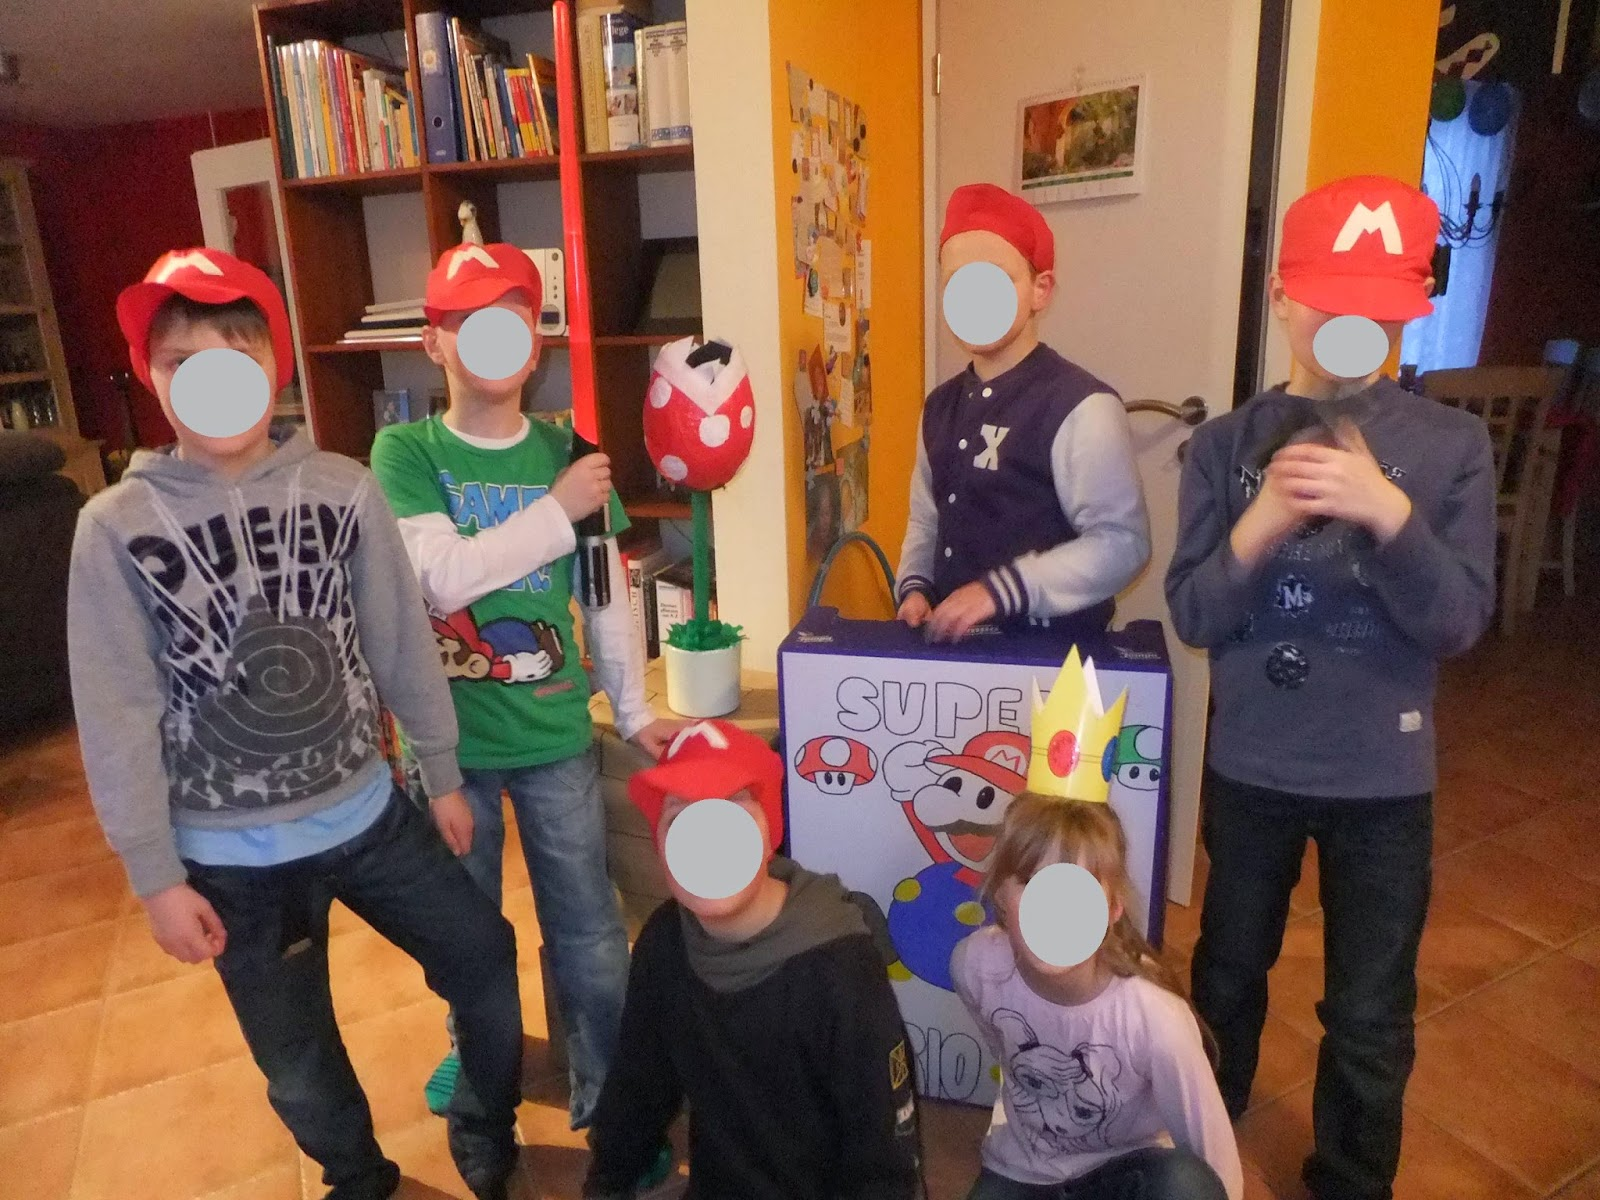 Gruppenbild von allen Super marios zur Party